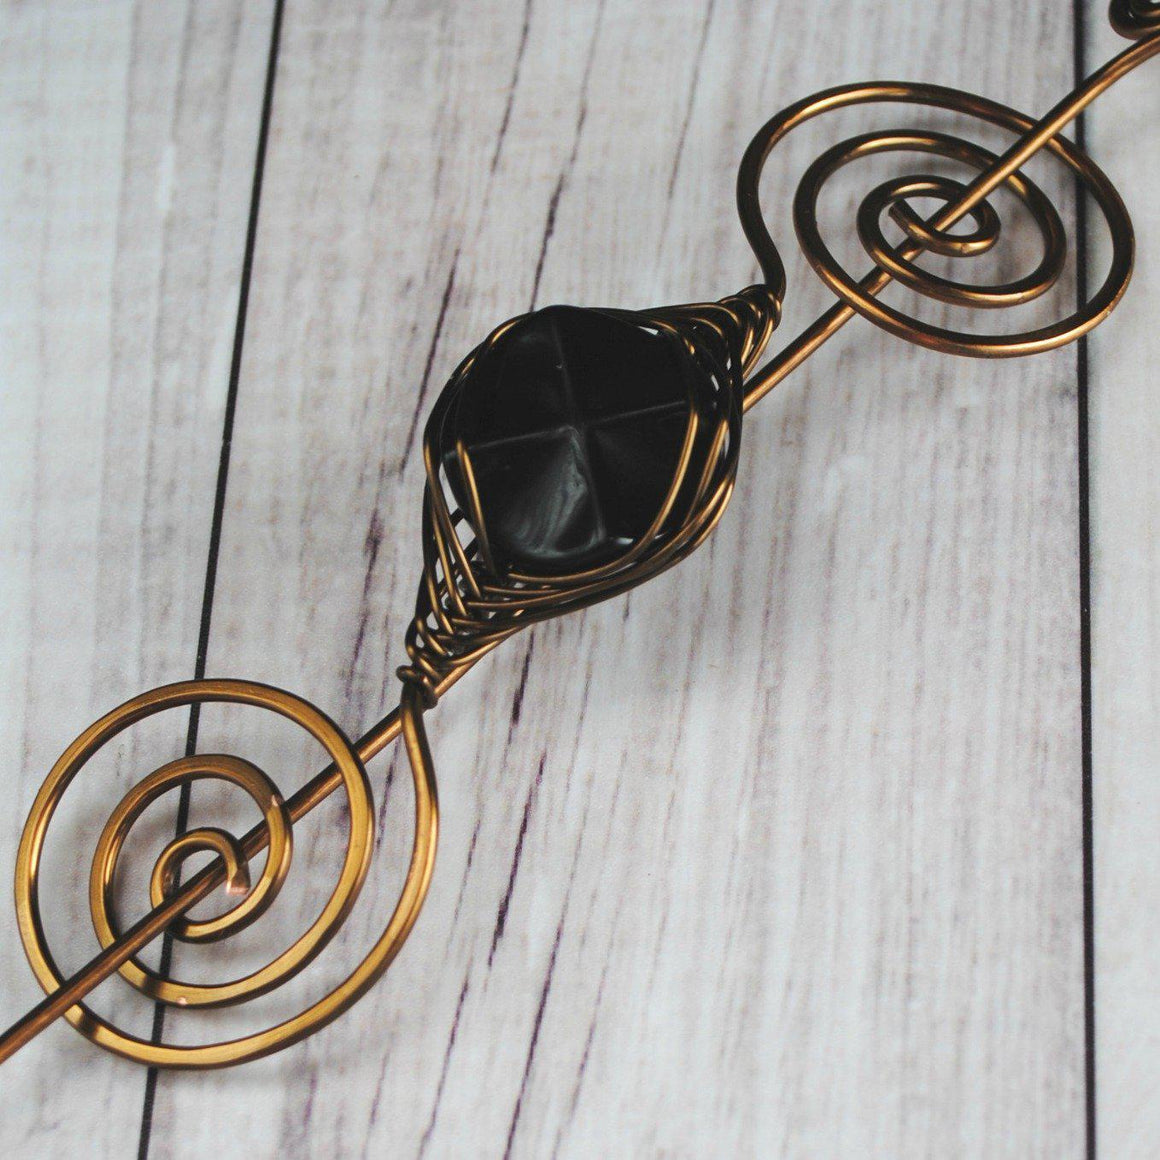 Shawl Pin, Black Glass Shawl Pin - Large Bronze - Crafty Flutterby Creations